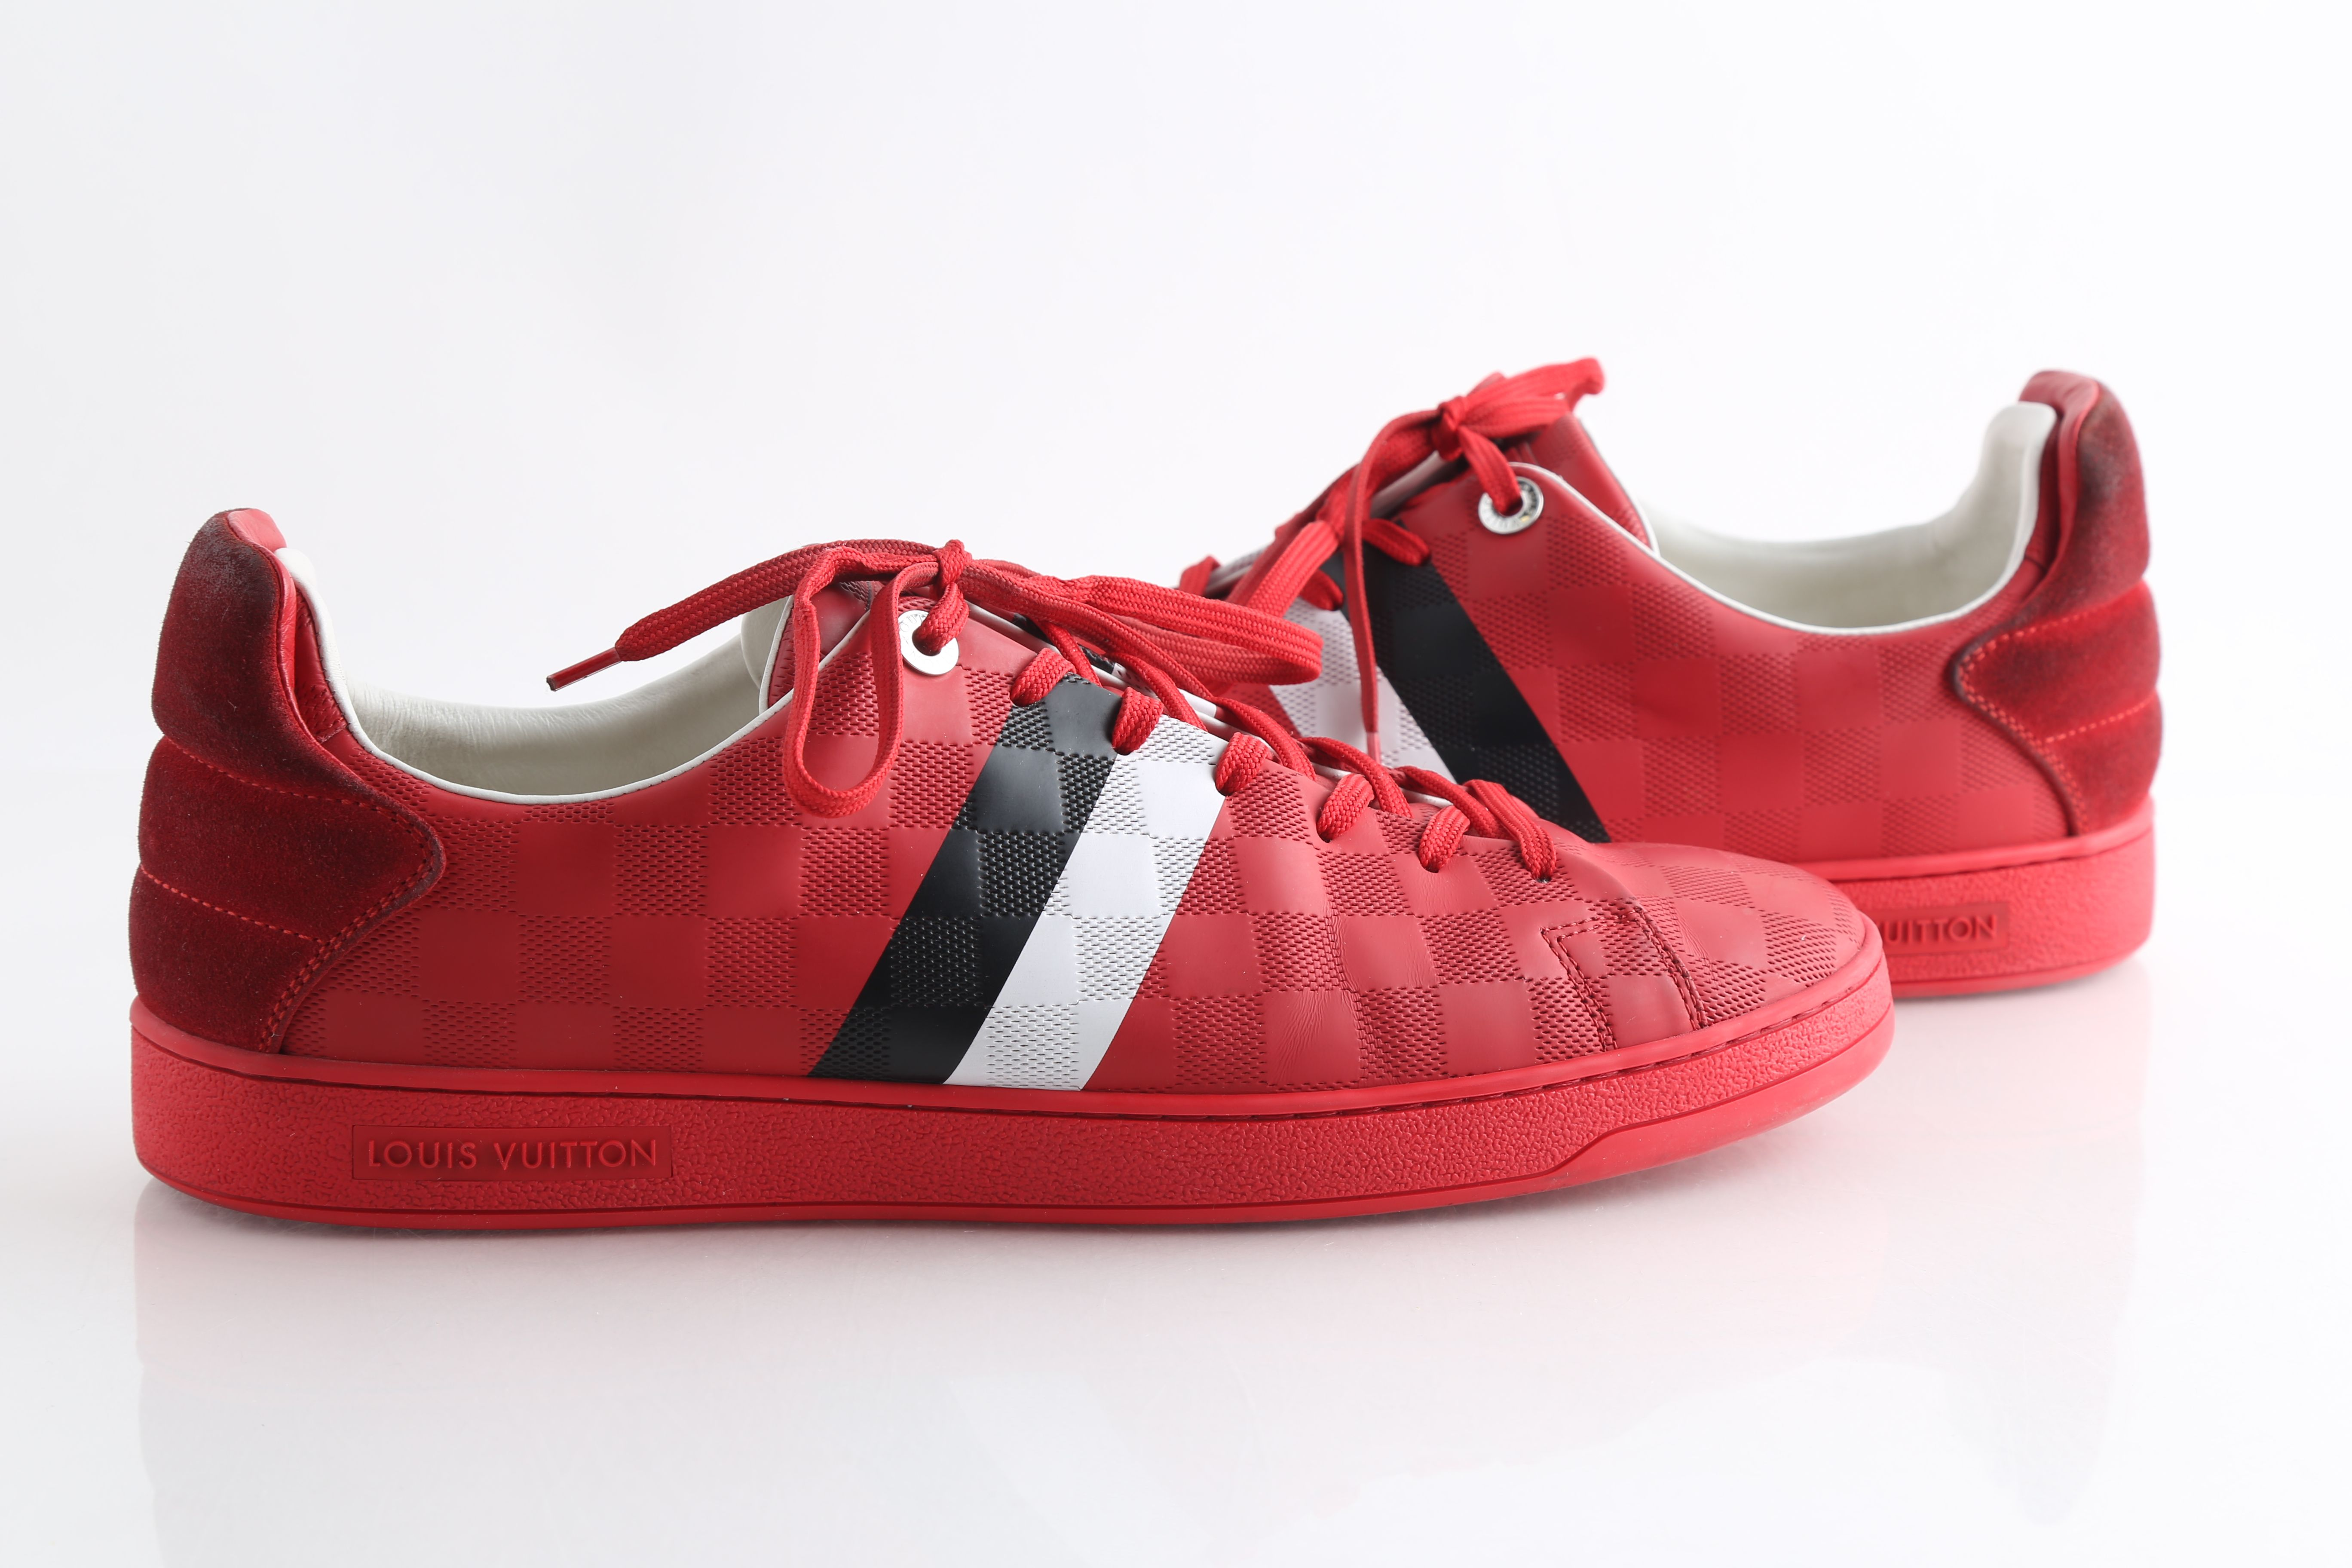 Louis Vuitton Red Frontrow Sneakers